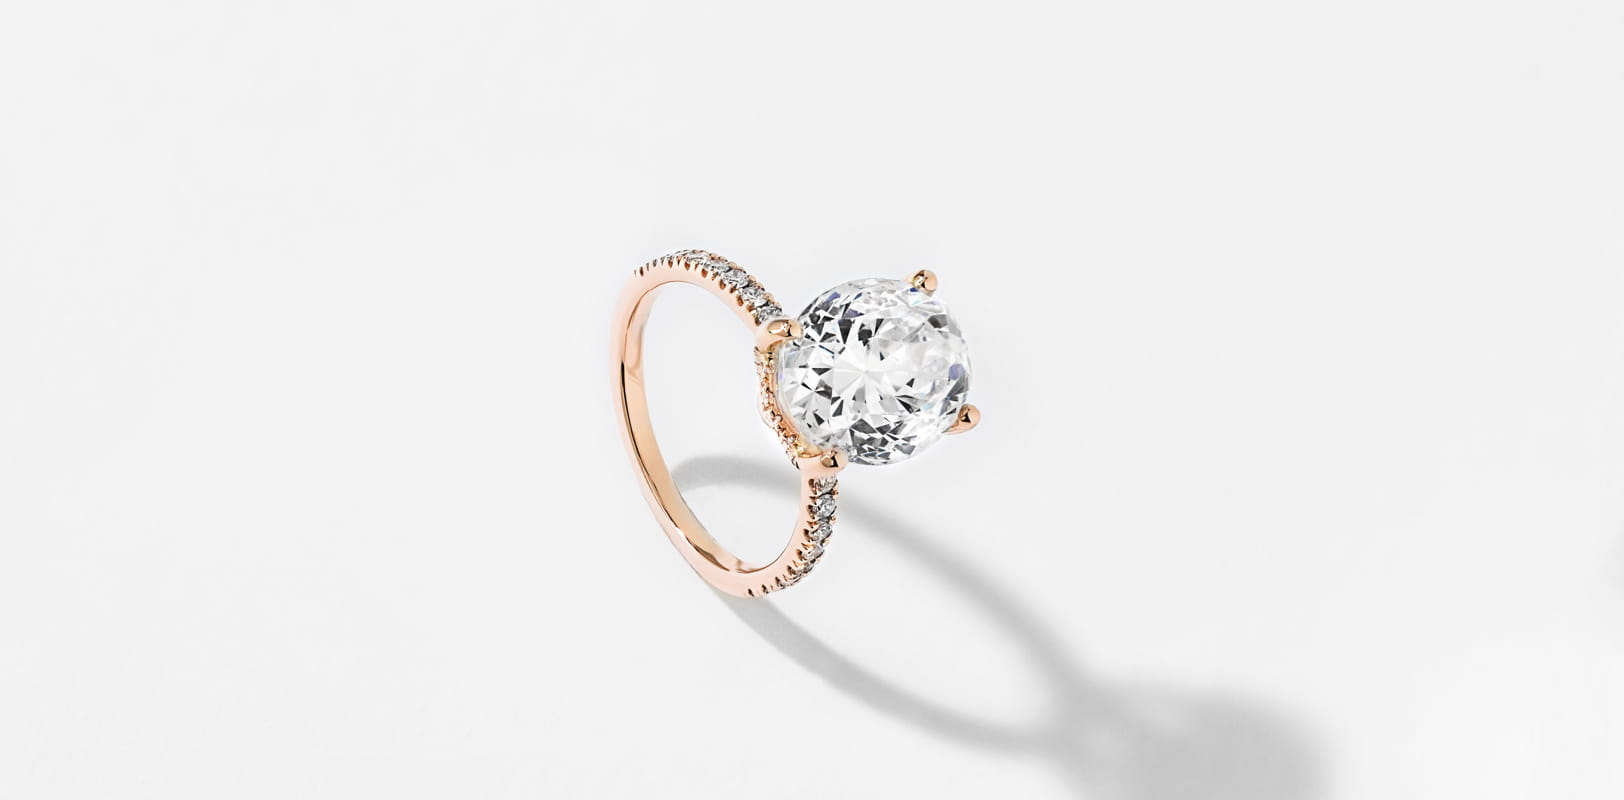 654c13aae0087 Affordable Engagement Rings & Diamonds | MiaDonna